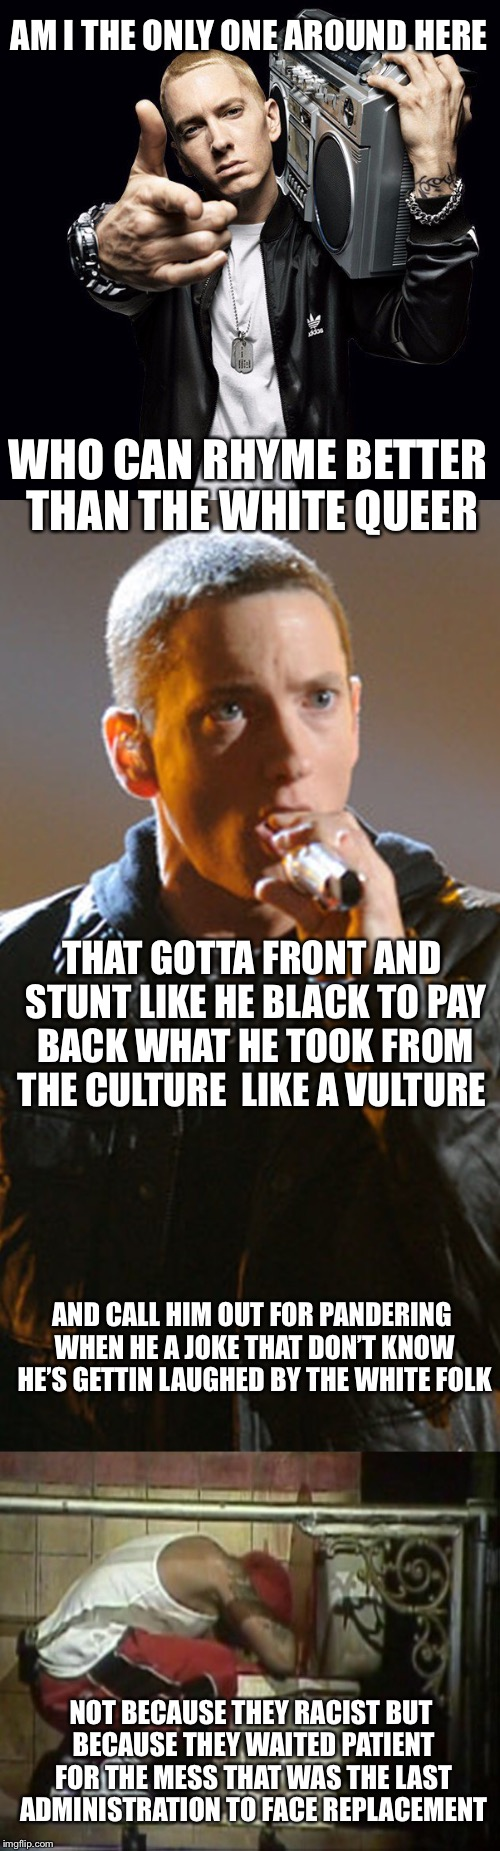 DEAR EMINEM FROM ONE WHITE GUY TO ANOTHER | AM I THE ONLY ONE AROUND HERE NOT BECAUSE THEY RACIST BUT BECAUSE THEY WAITED PATIENT FOR THE MESS THAT WAS THE LAST ADMINISTRATION TO FACE  | image tagged in memes,eminem,marshall mathers,am i the only one around here,hip hop | made w/ Imgflip meme maker